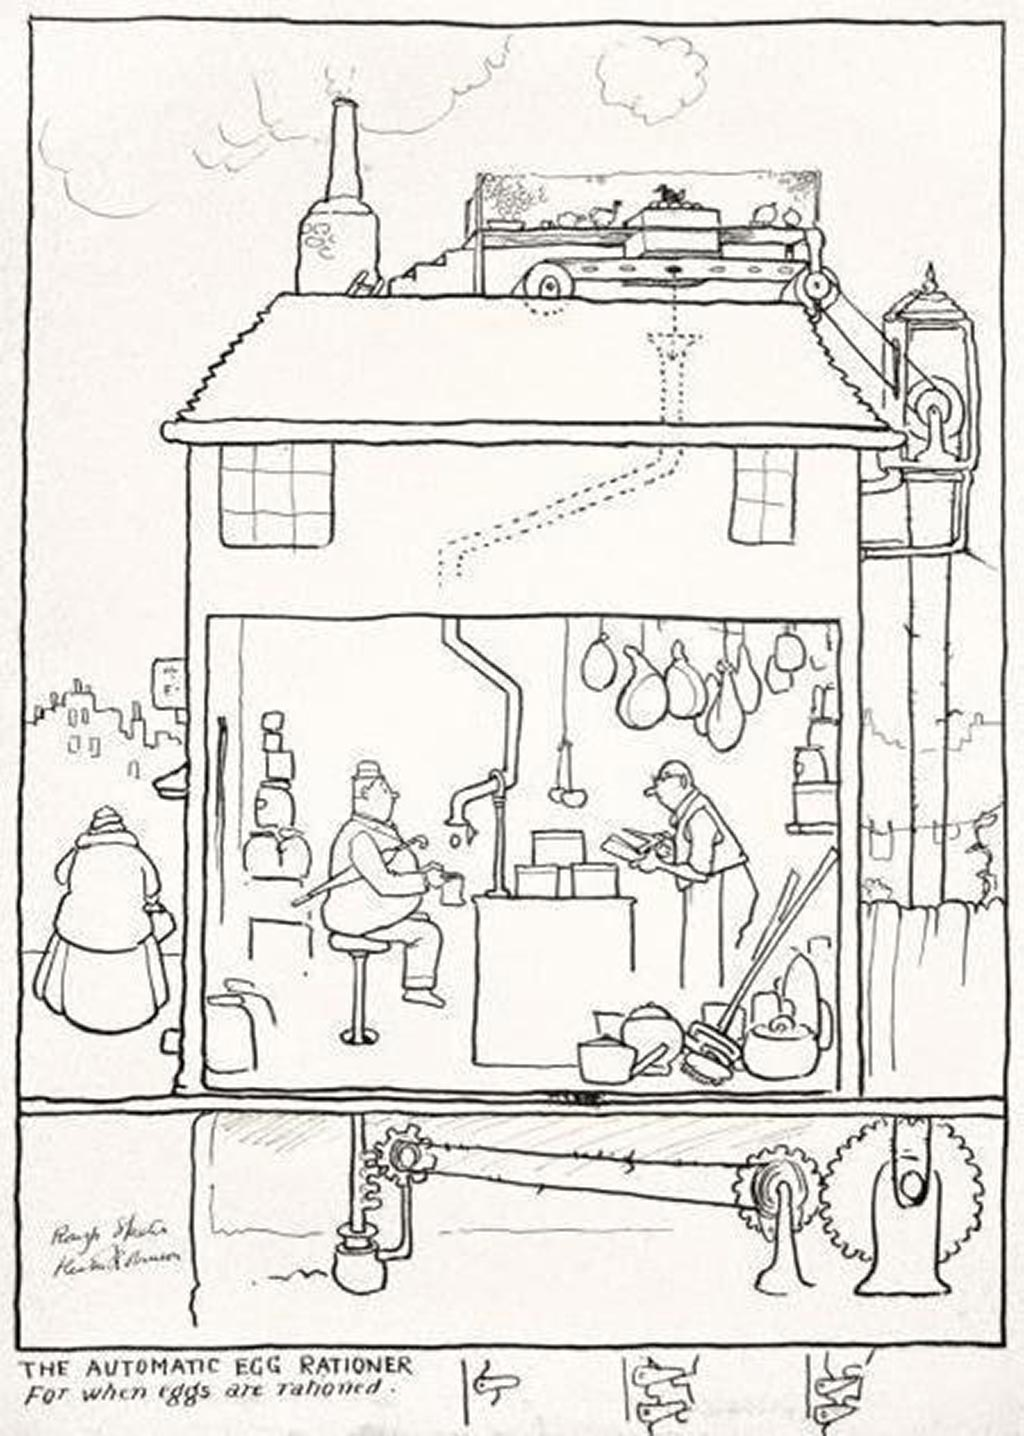 william_heath_robinson_inventions_the_automatic_egg_rationer_1940